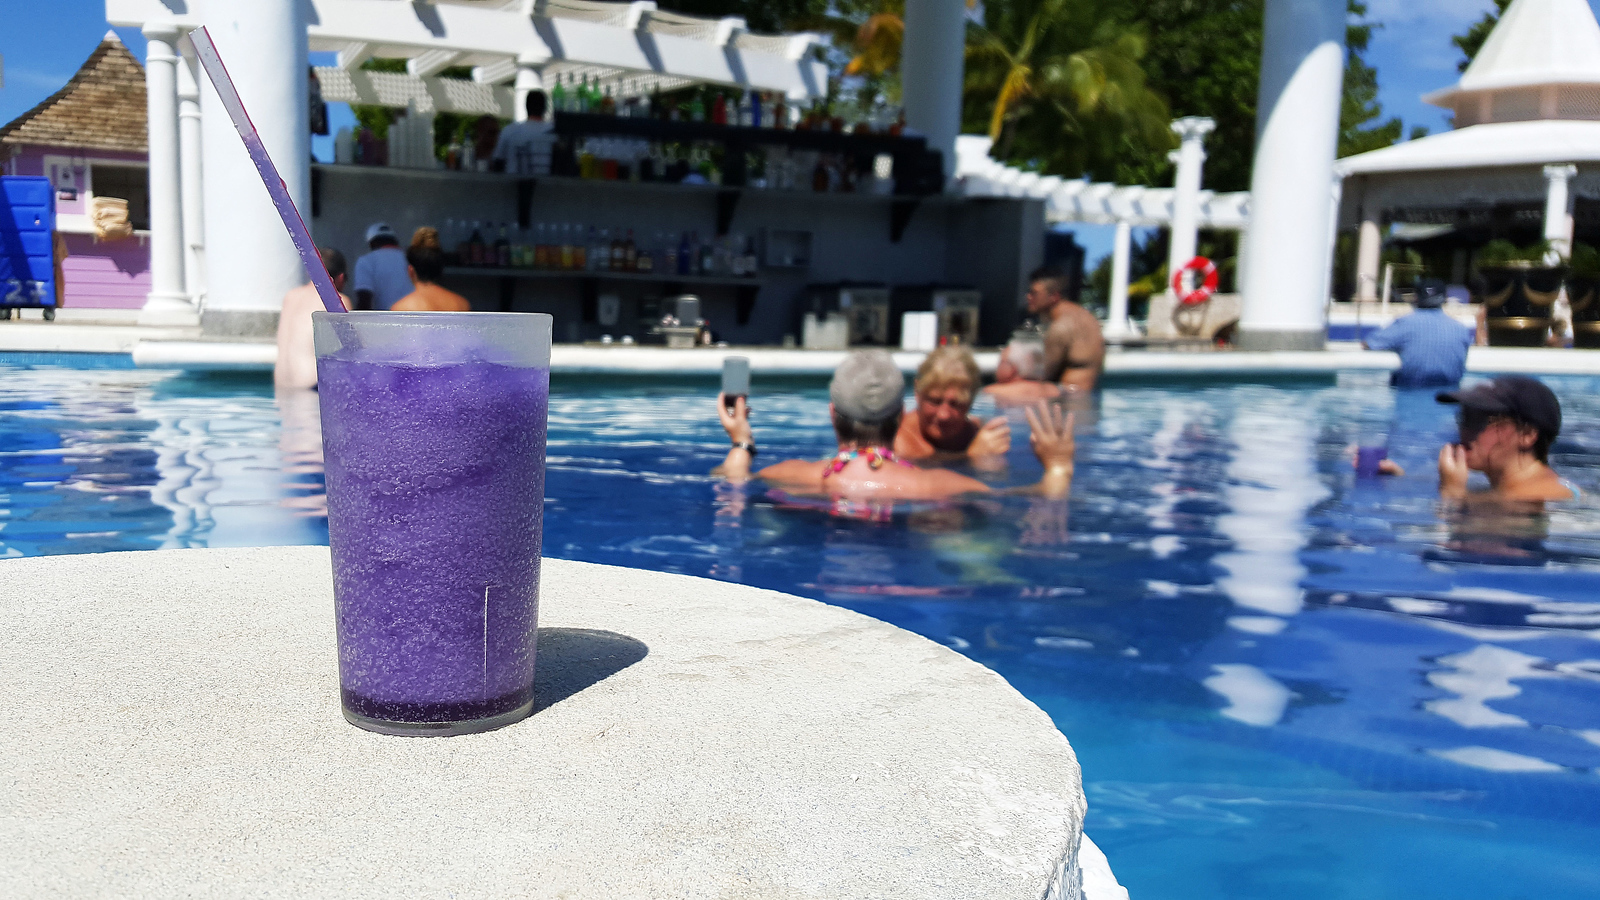 Slushy purple drink by the swimming pool at the Riu Resort in Jamaica